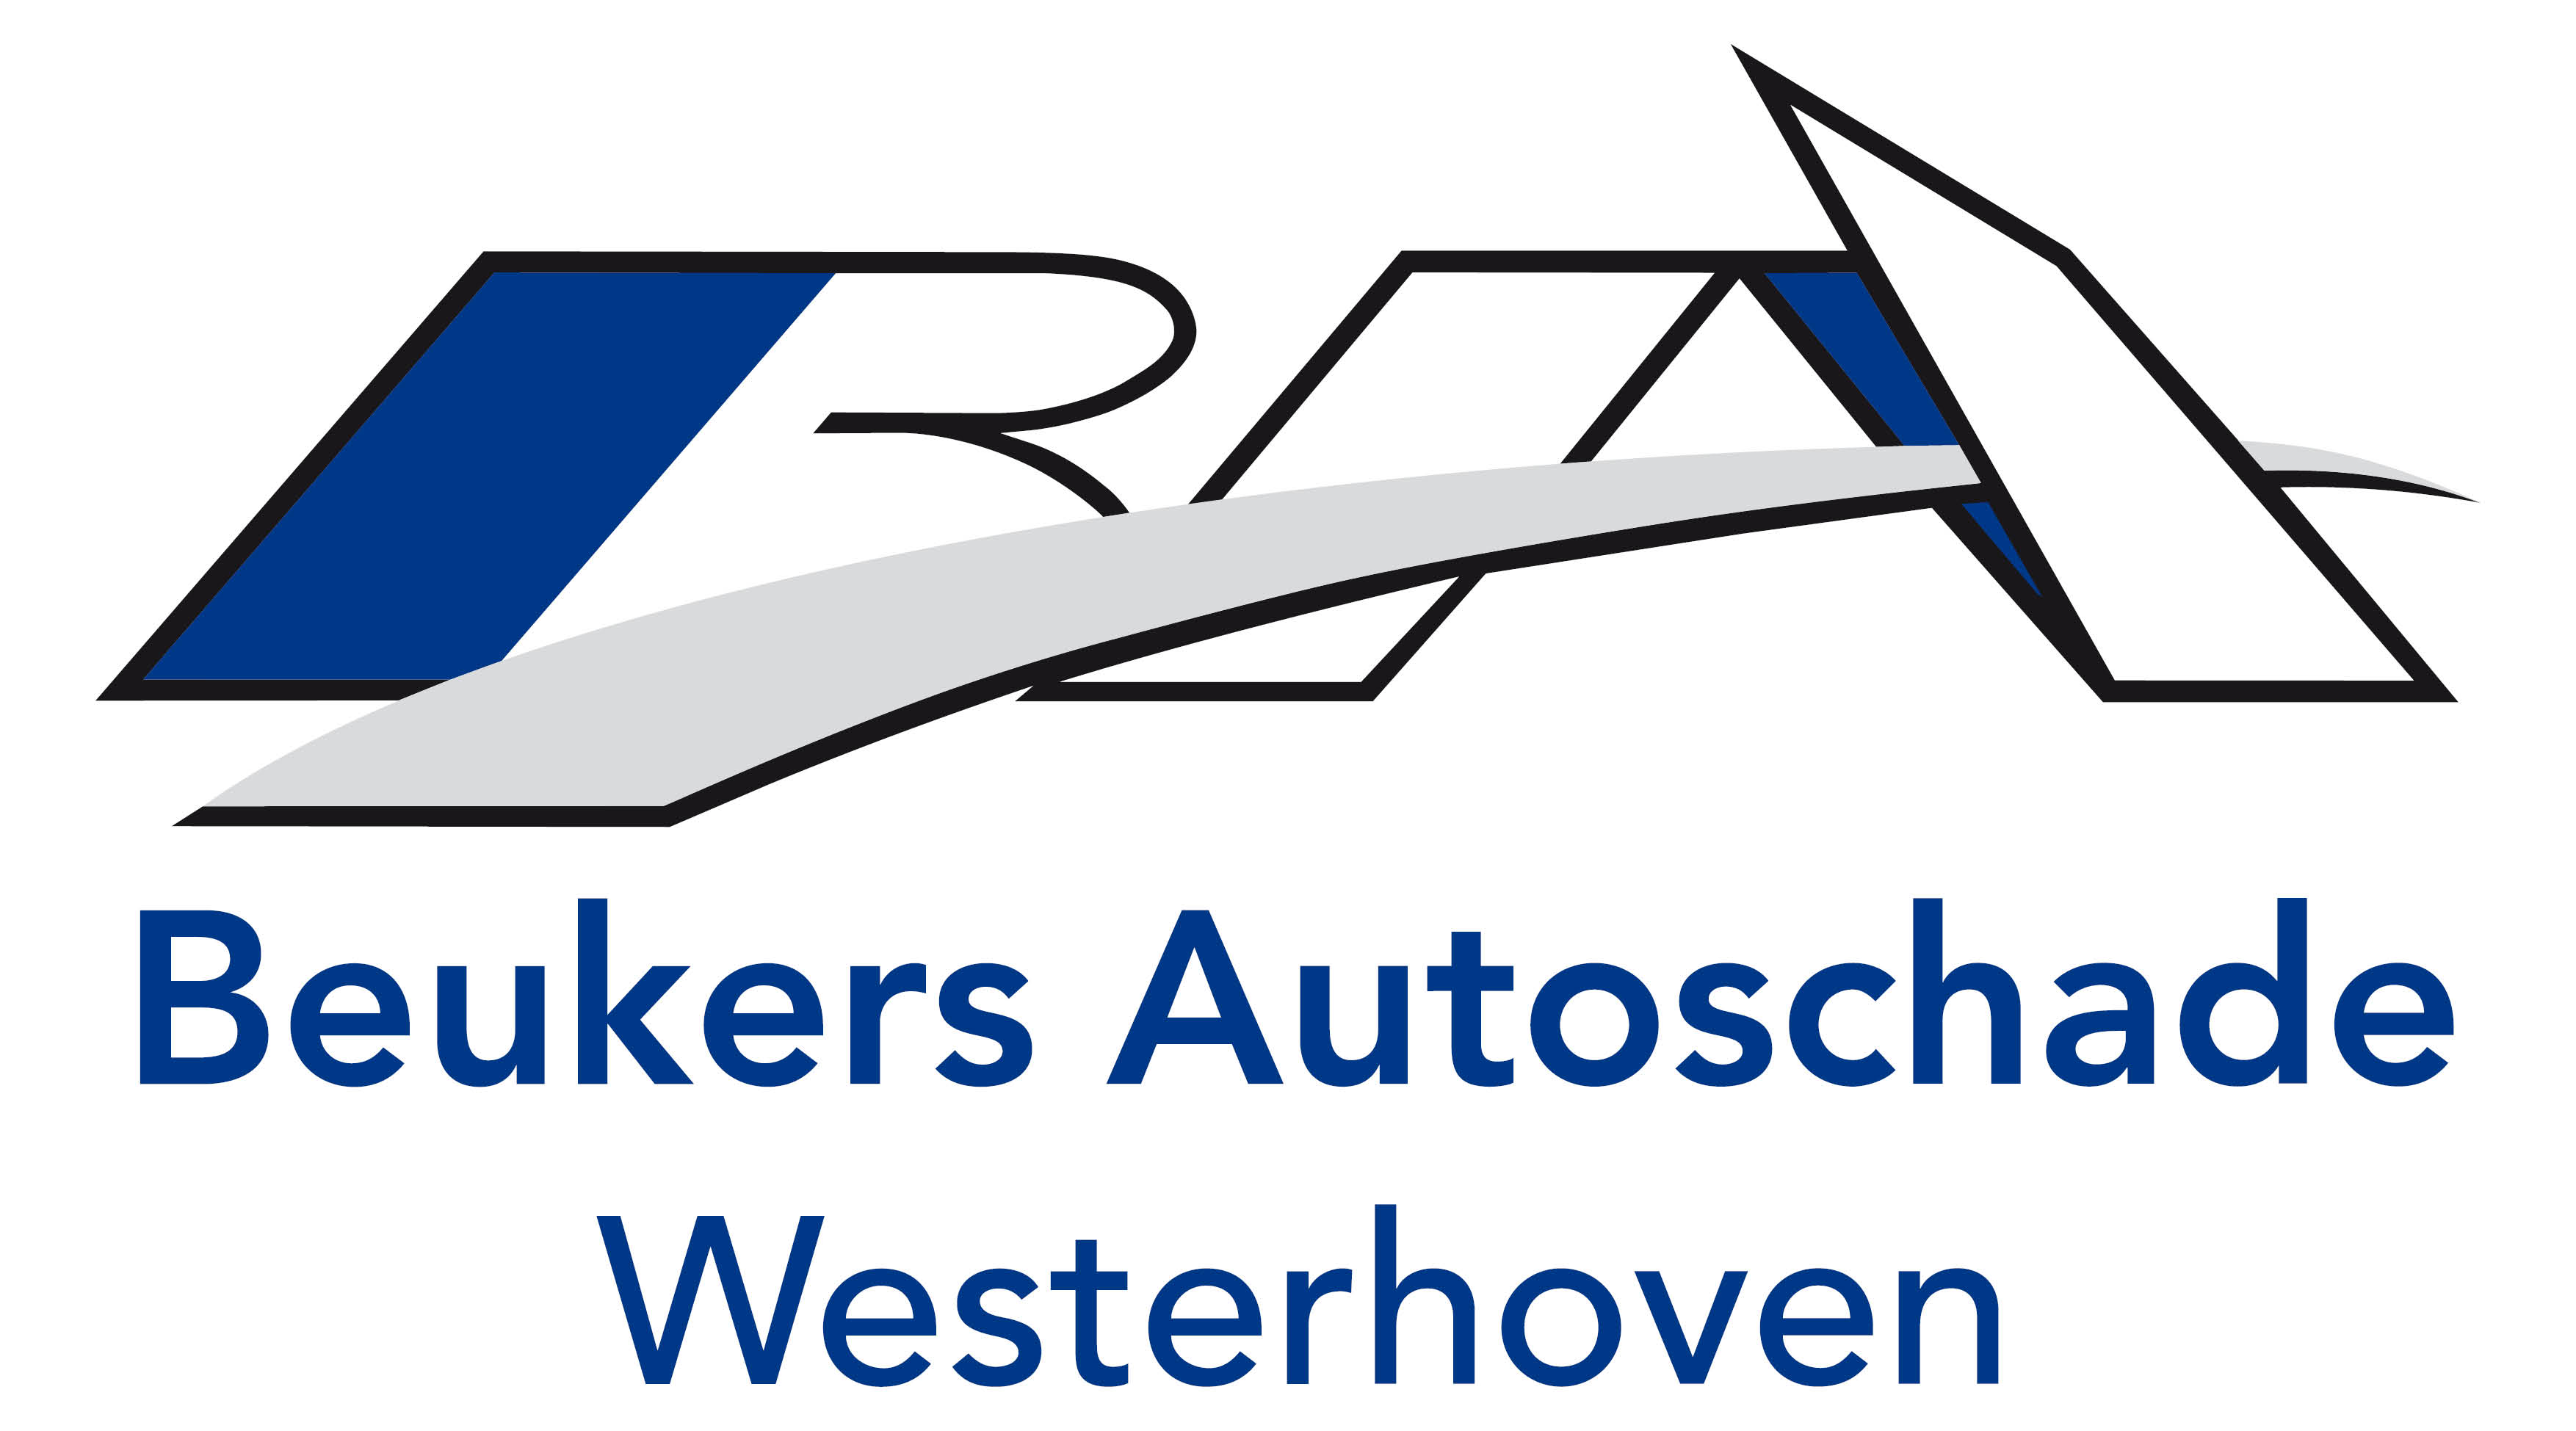 Beukers Autoschade